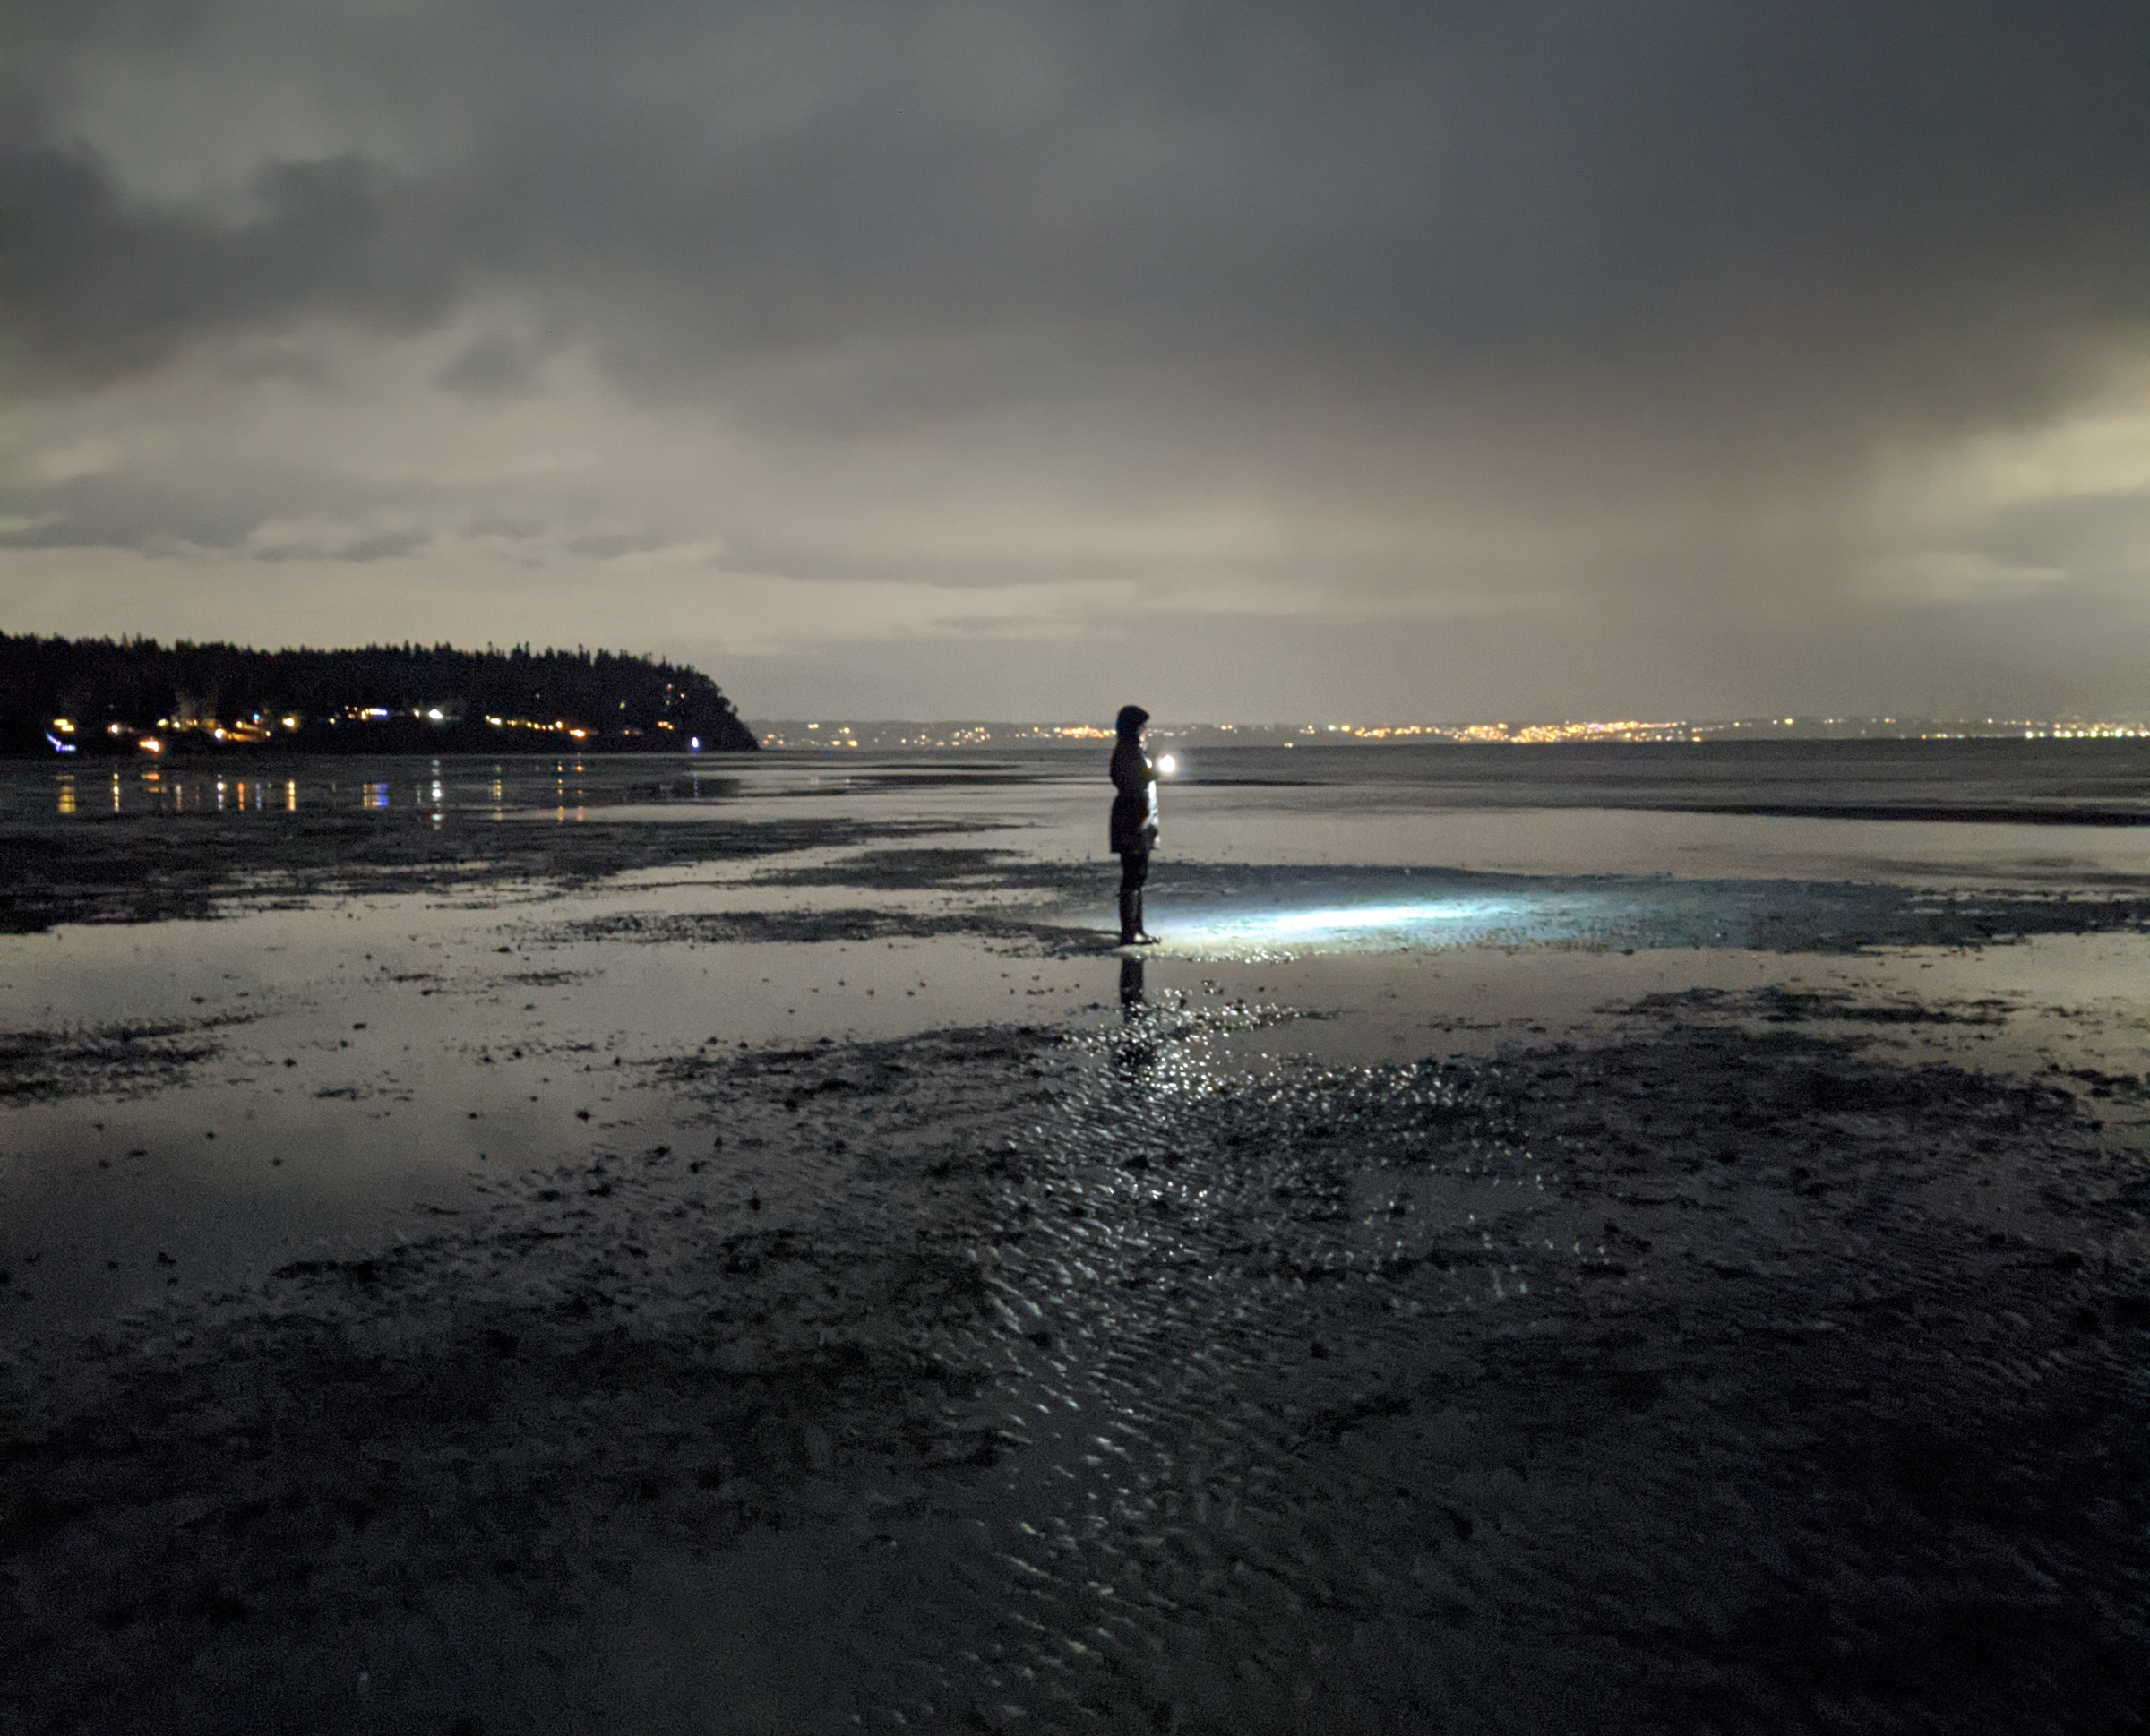 A person stands on tight flats in the dark with the city of seattle in the background